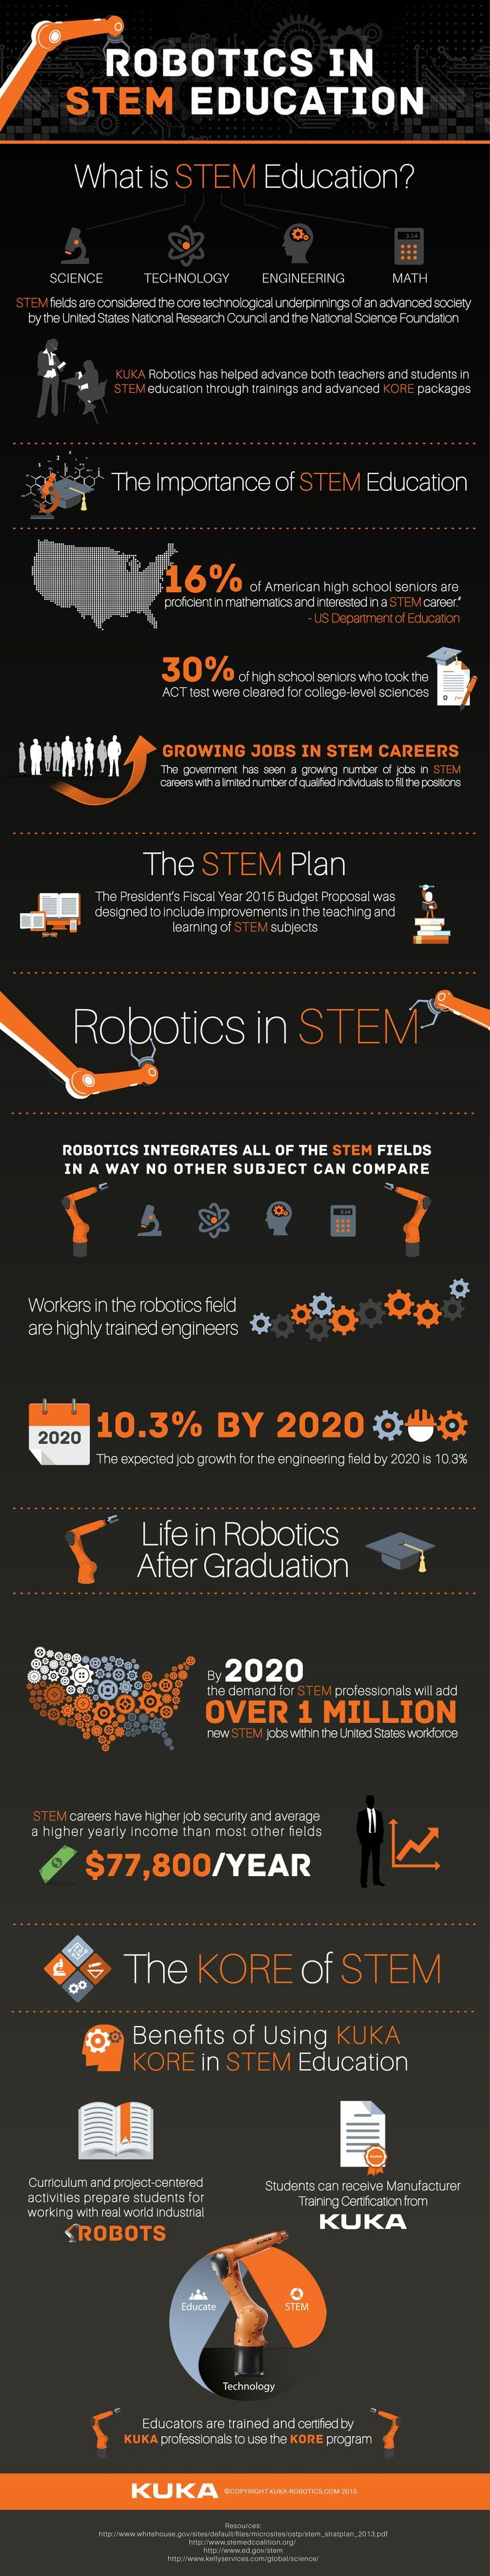 Amazing infographic showcasing robotic applications for STEM education in the classroom. via KUKA Robotics